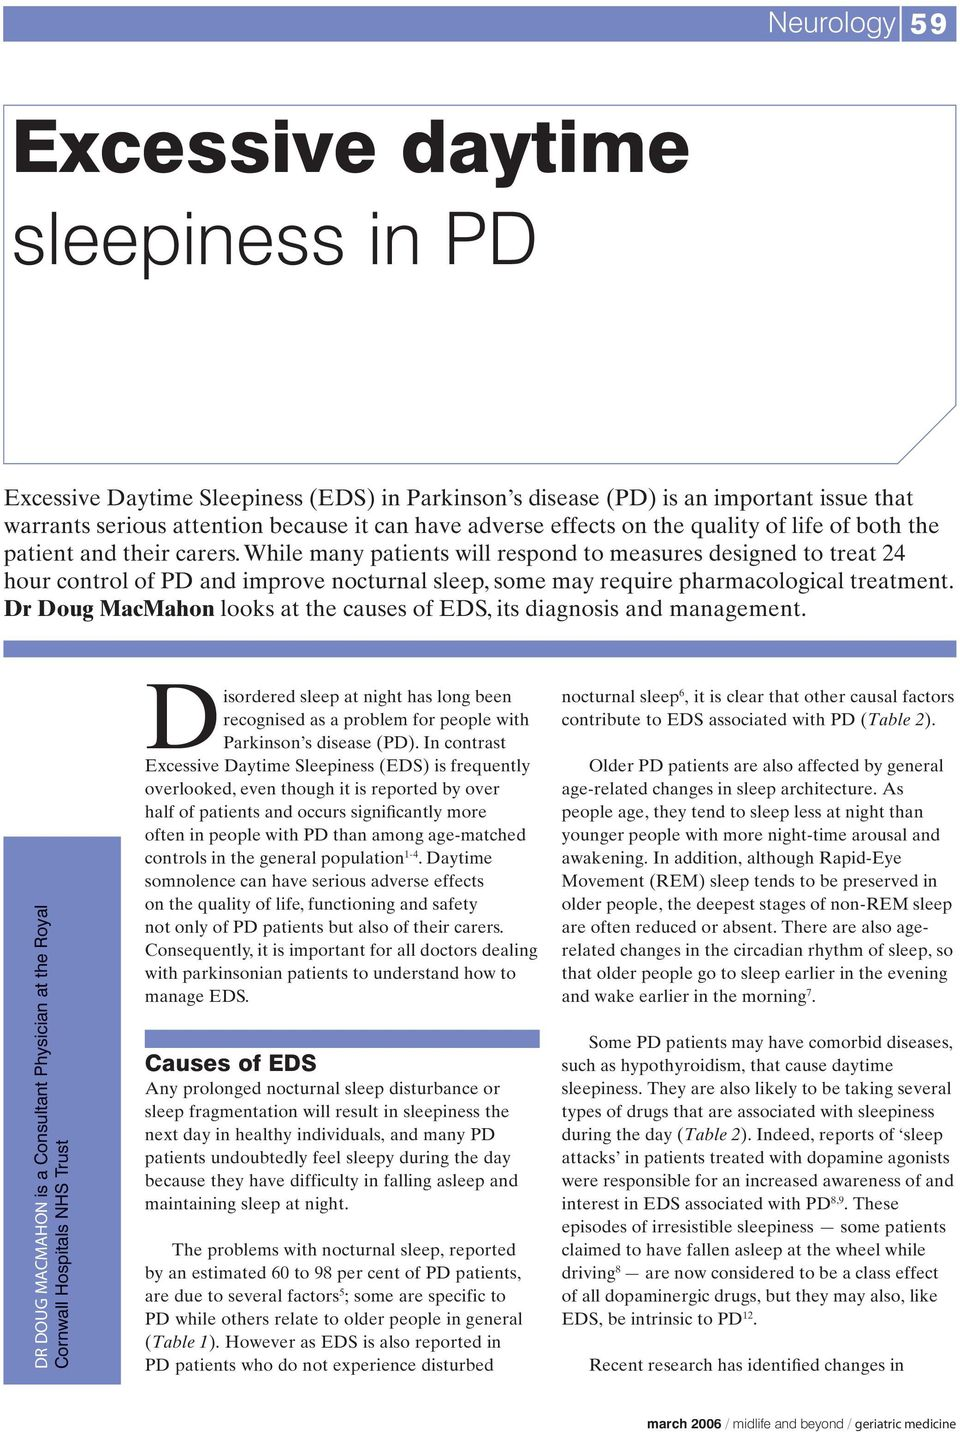 While many patients will respond to measures designed to treat 24 hour control of PD and improve nocturnal sleep, some may require pharmacological treatment.